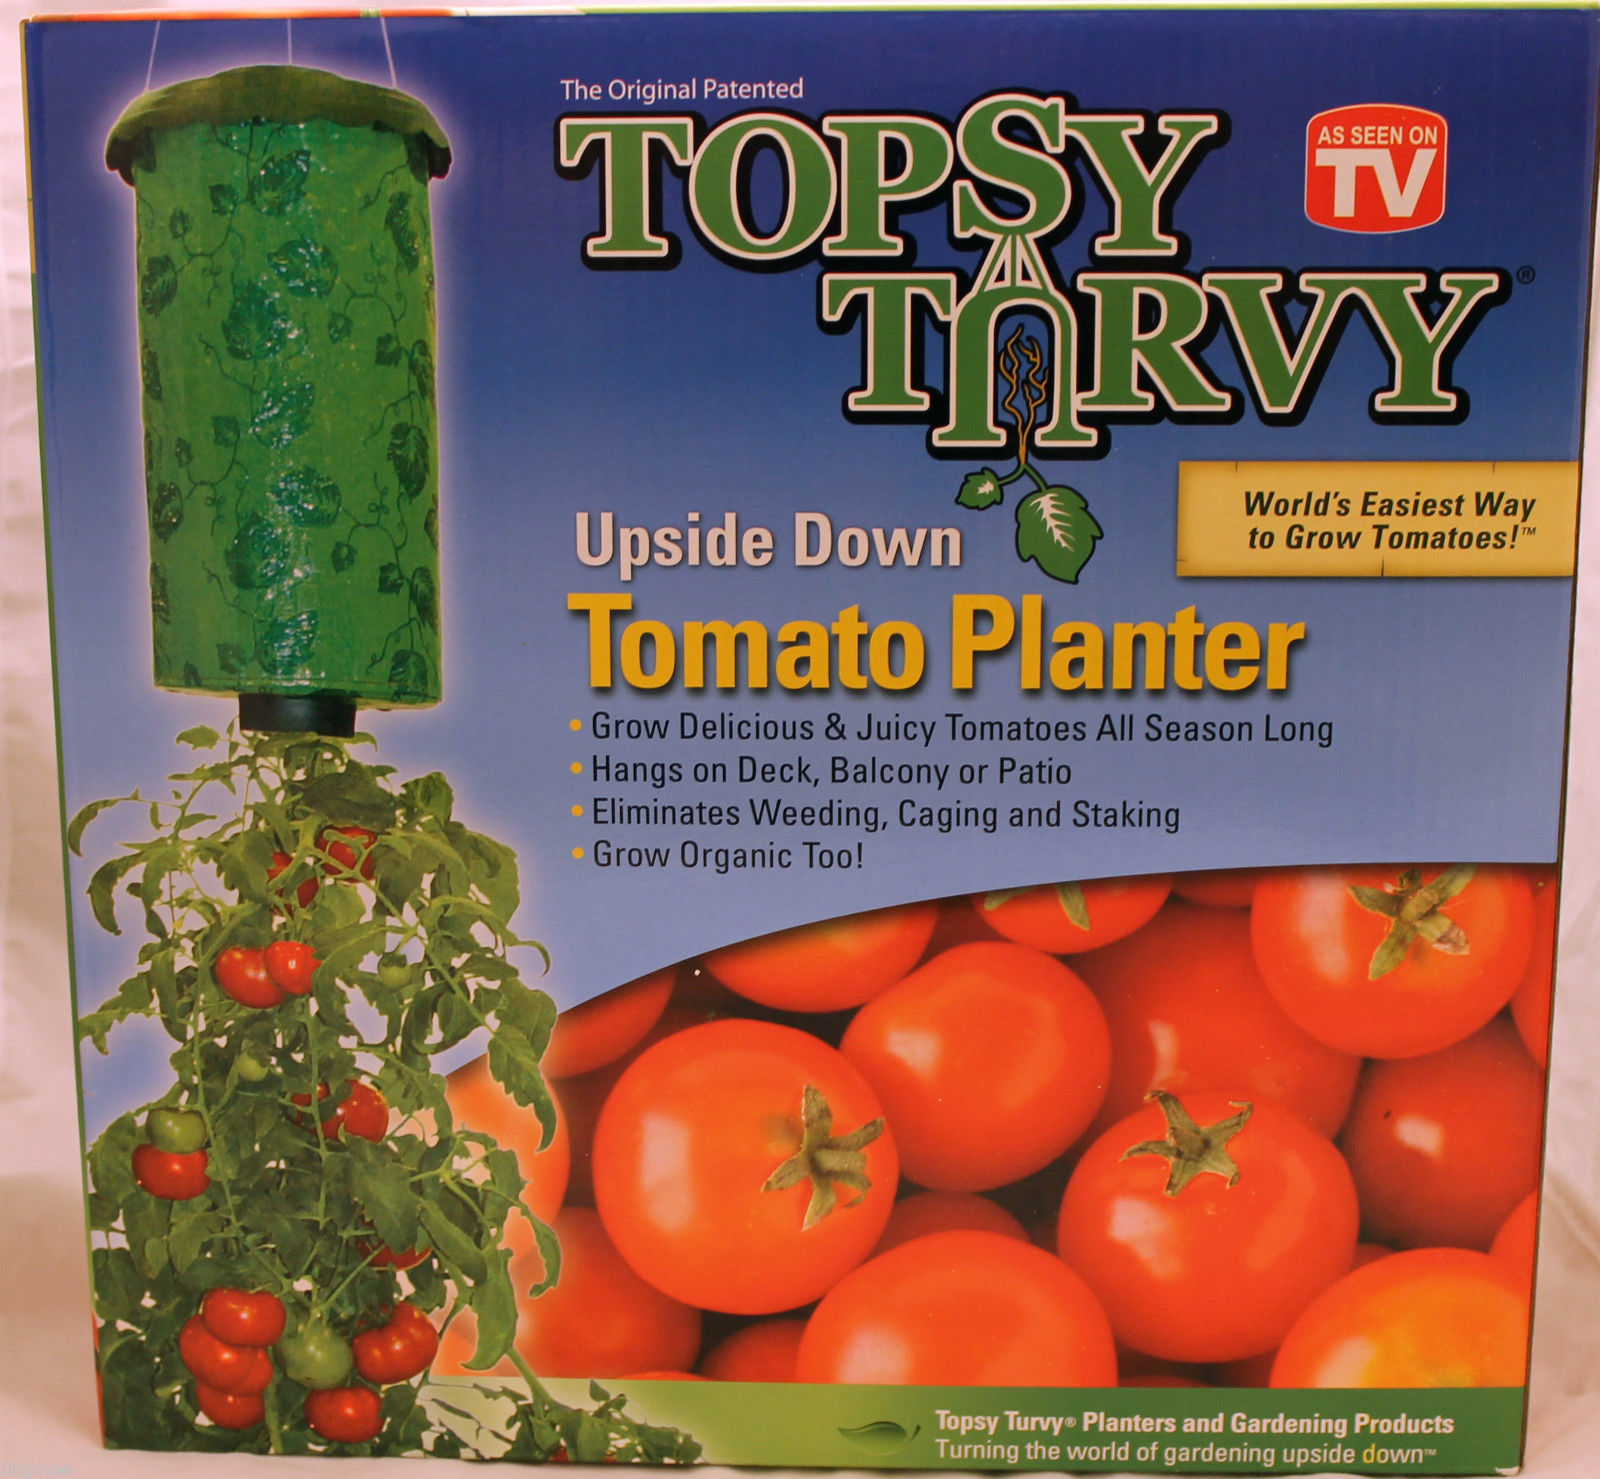 Nip Topsy Turvy Tomato Herb And Vegetable Hanging Upside Down Garden Planter Planters Pots